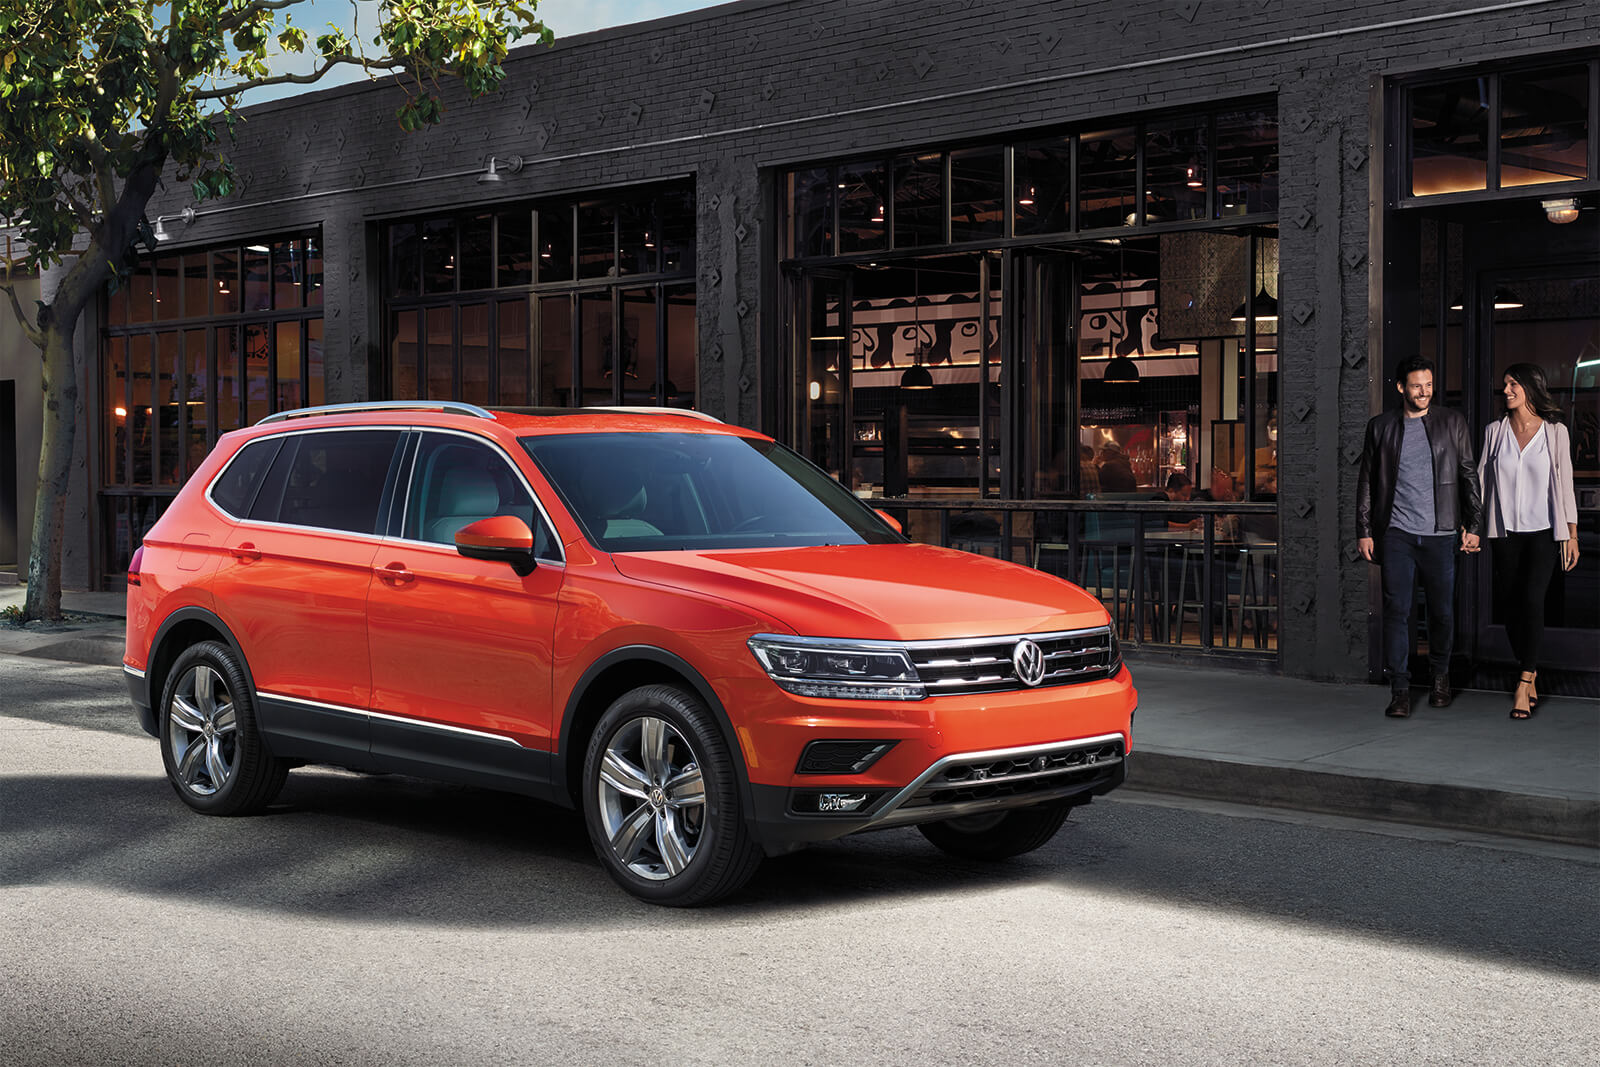 2019 Volkswagen Tiguan for Sale near Atlantic City, NJ